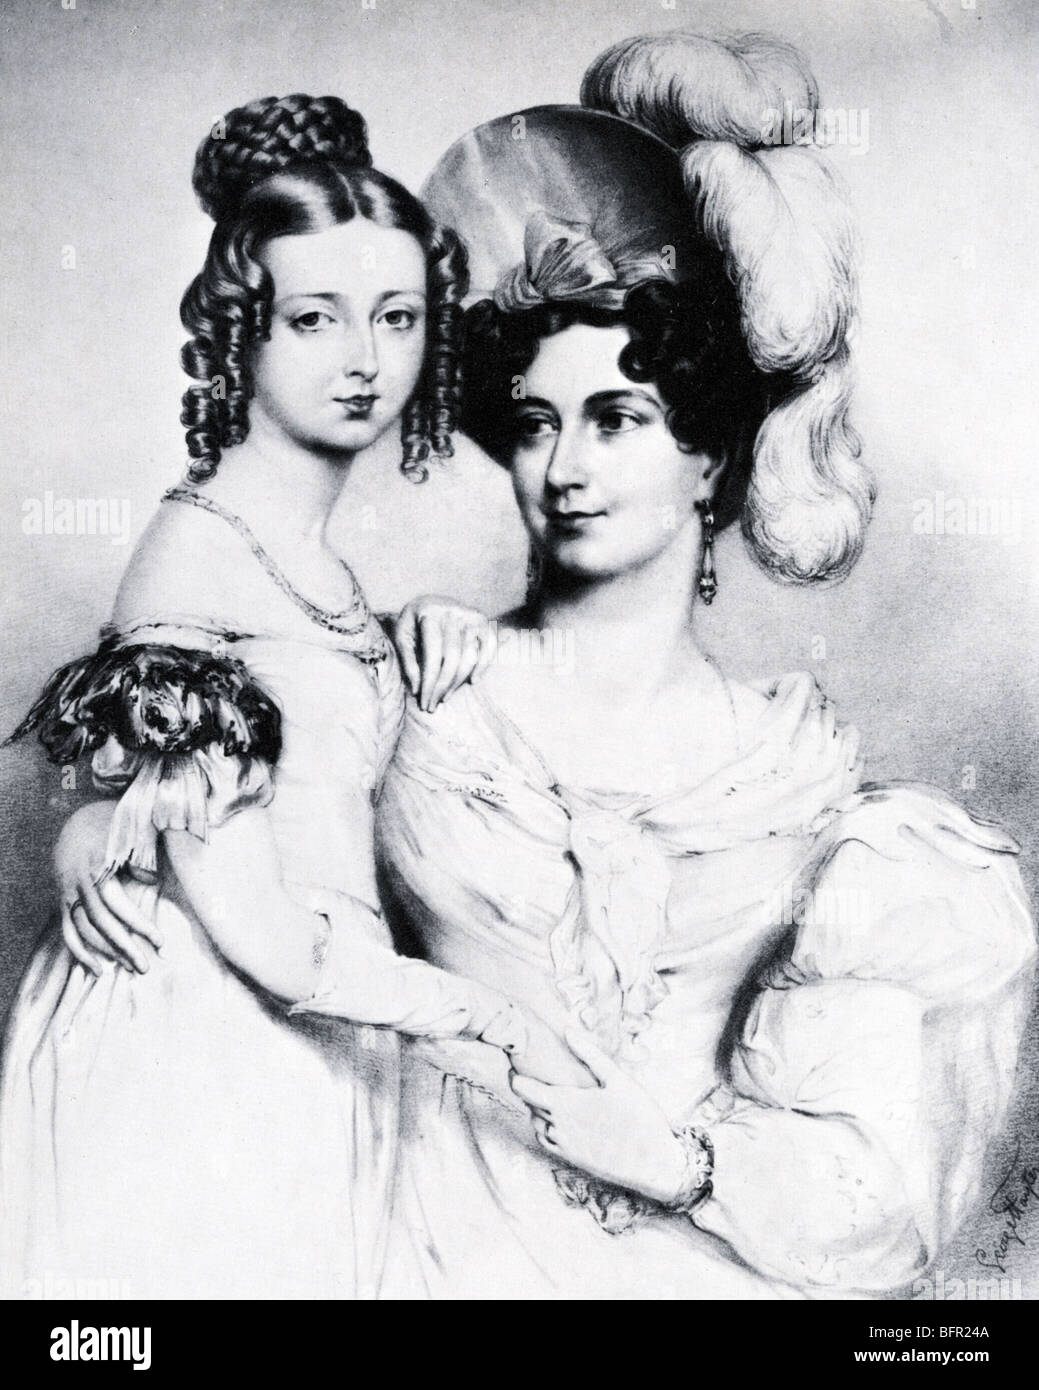 PRINCESS VICTORIA (the future Queen) with the Duchess of Kent in an 1834 engraving by George Hayter - Stock Image